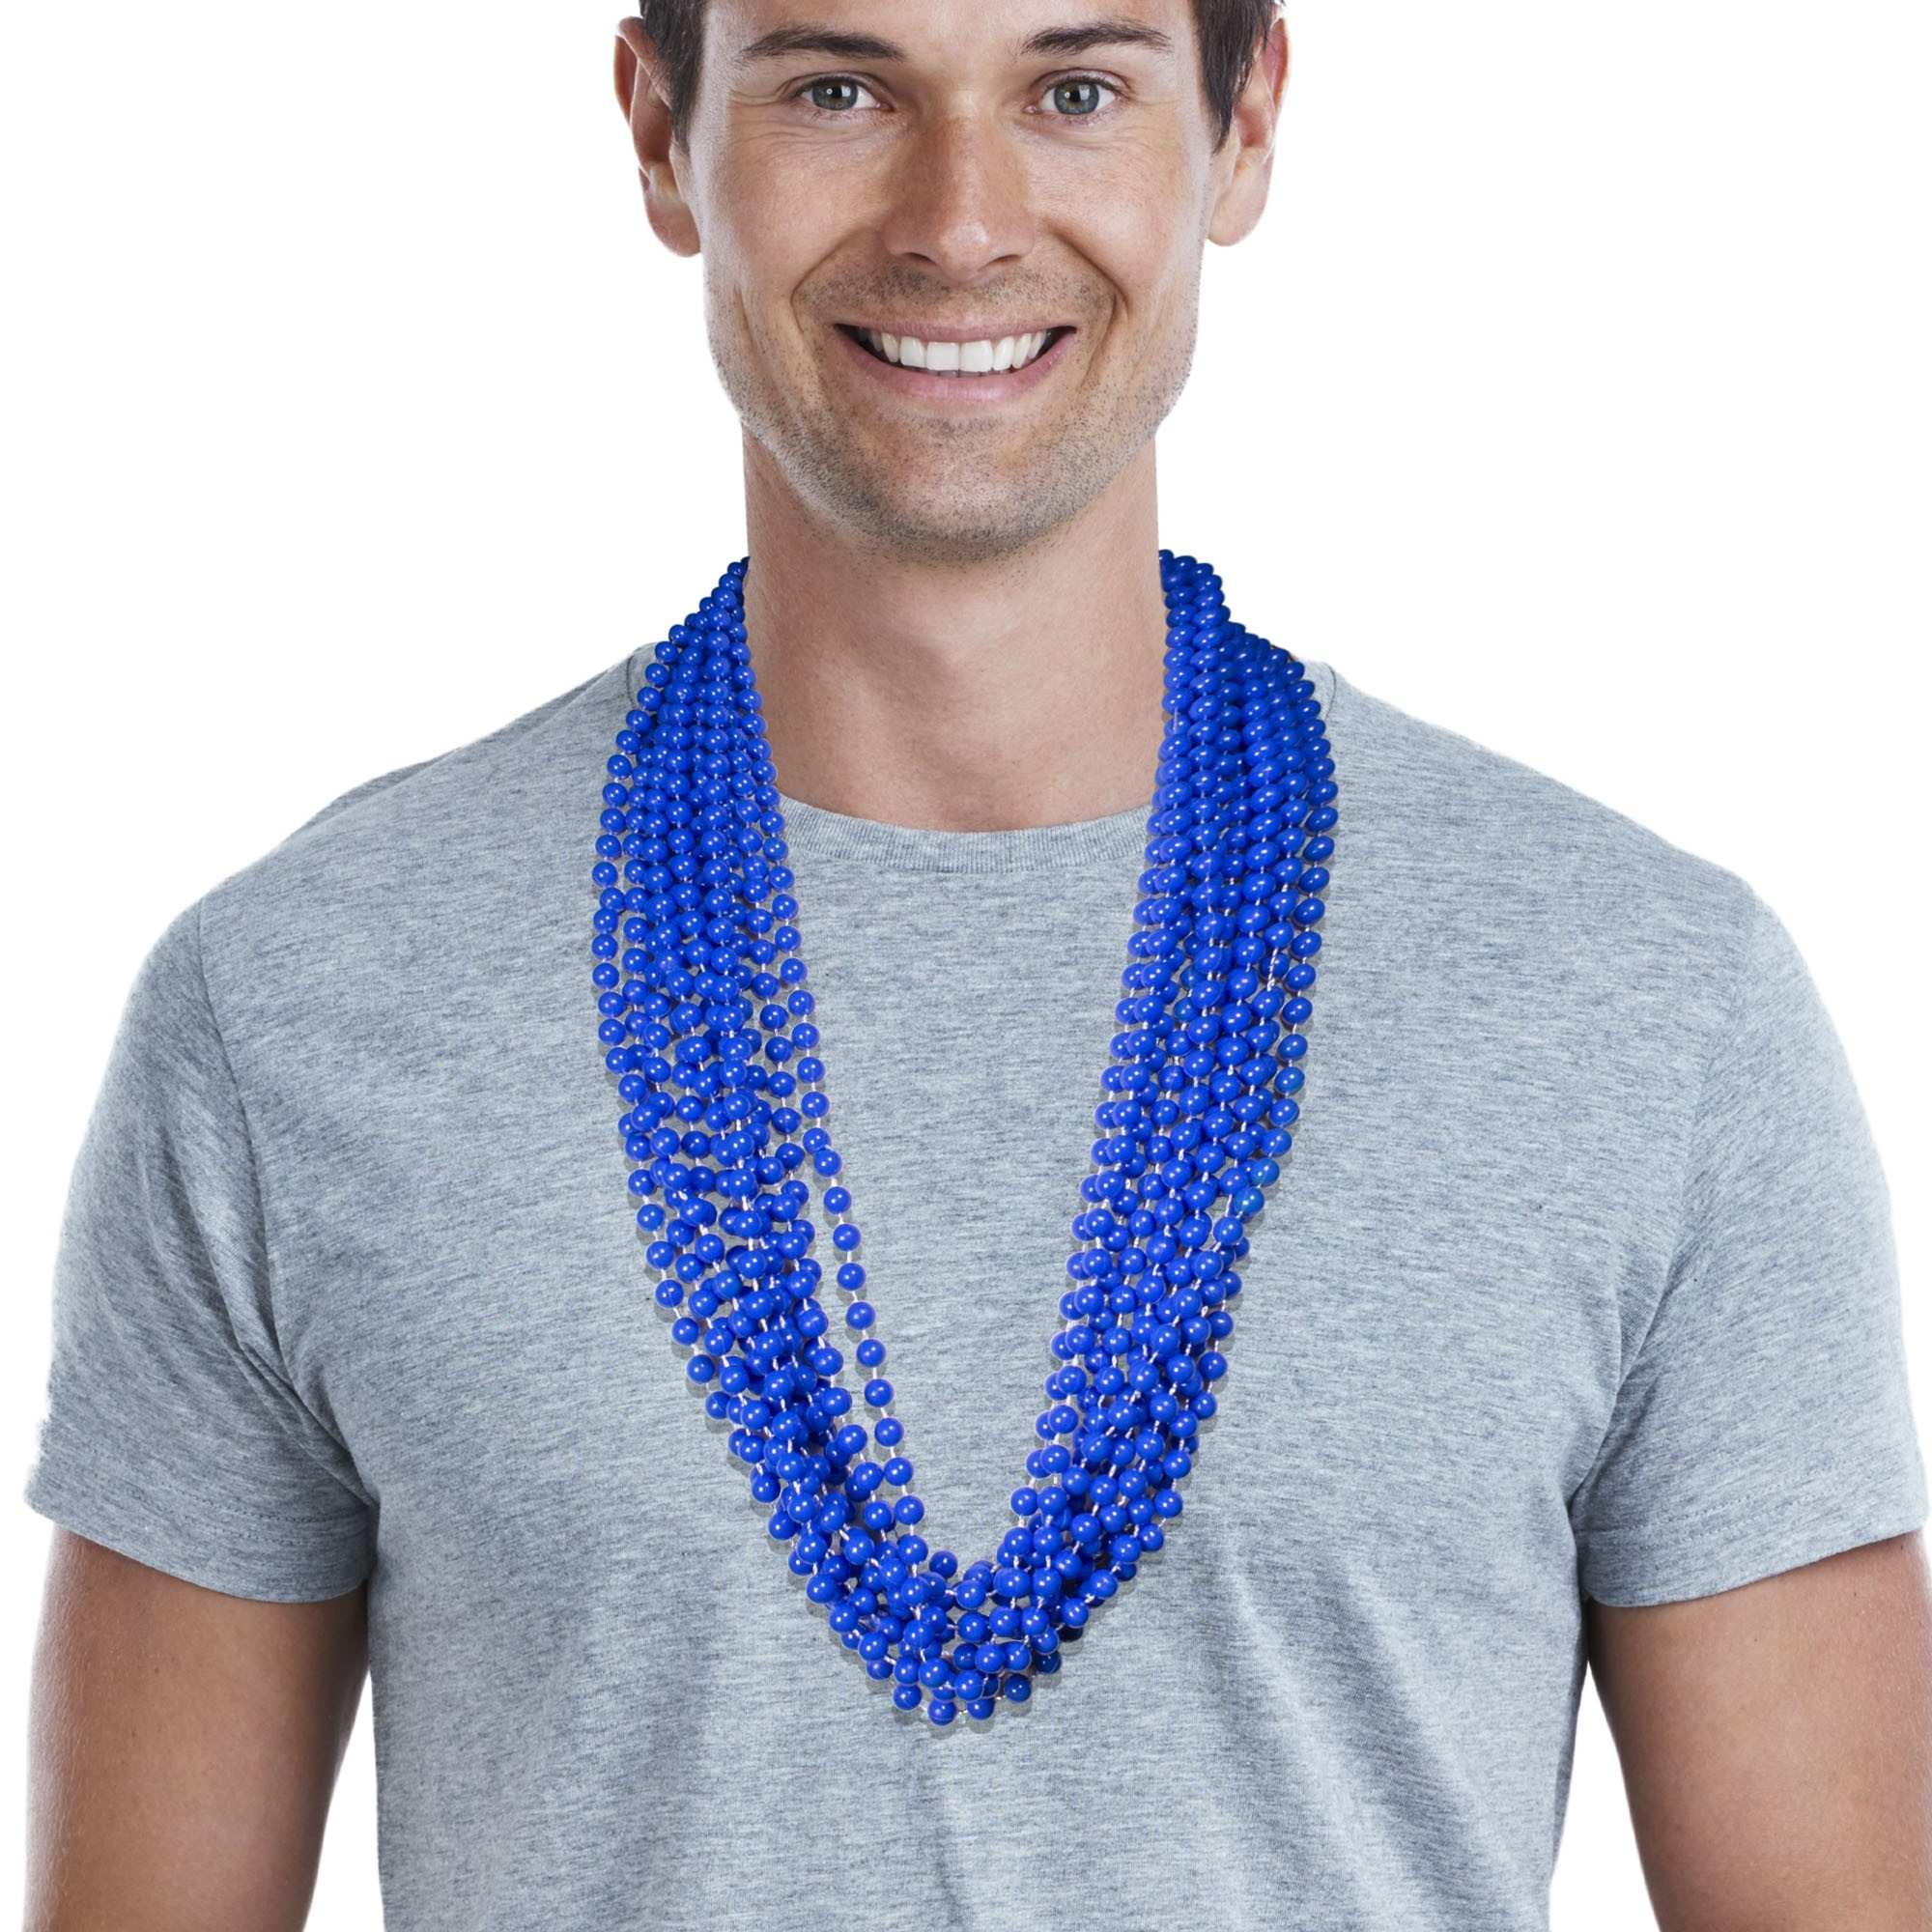 Solid Blue Mardi Gras Beads